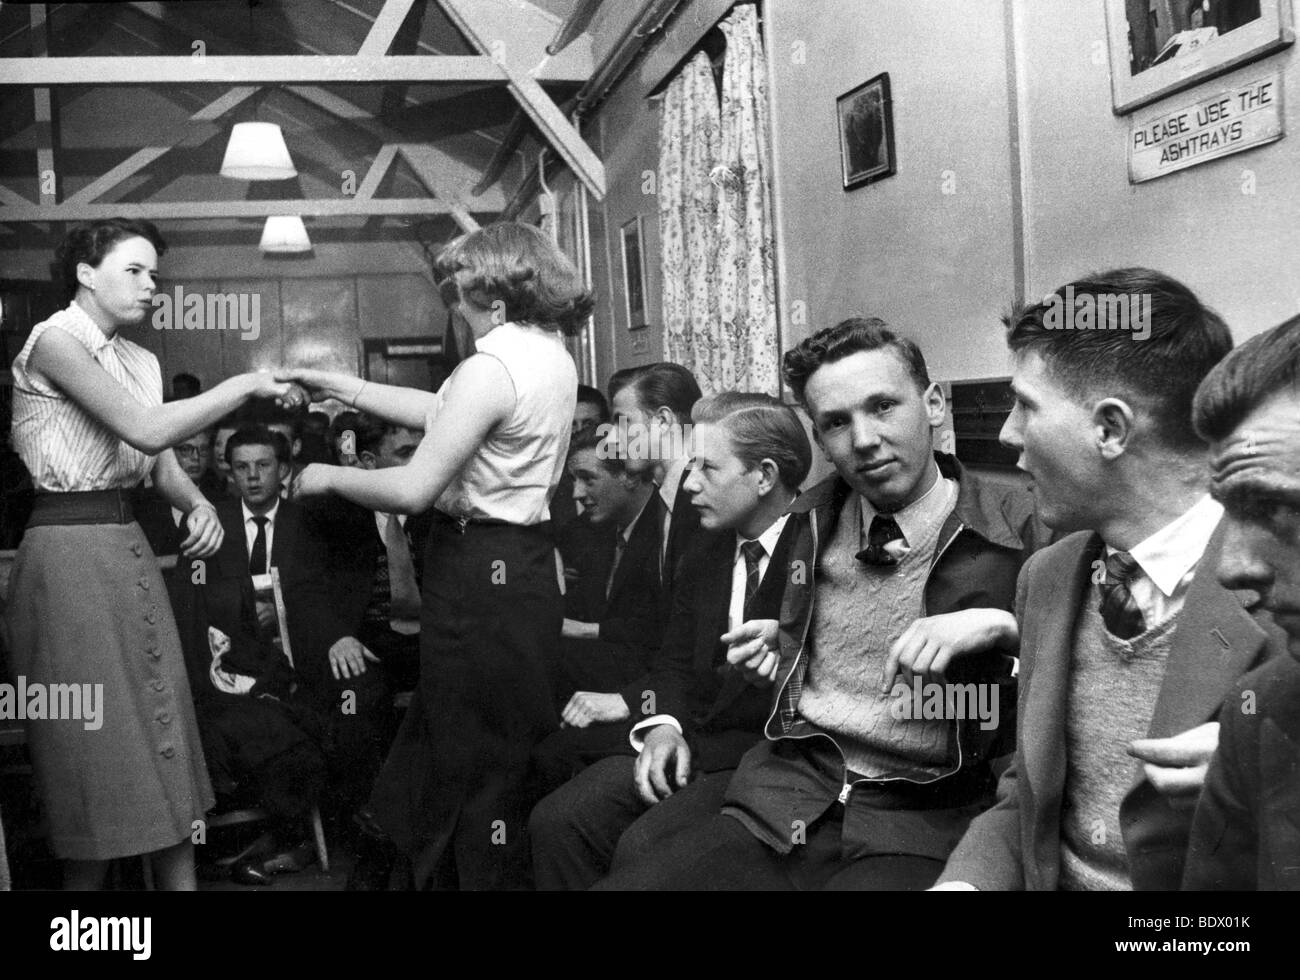 SOUTH LONDON teenage dance club en 1957 Foto de stock